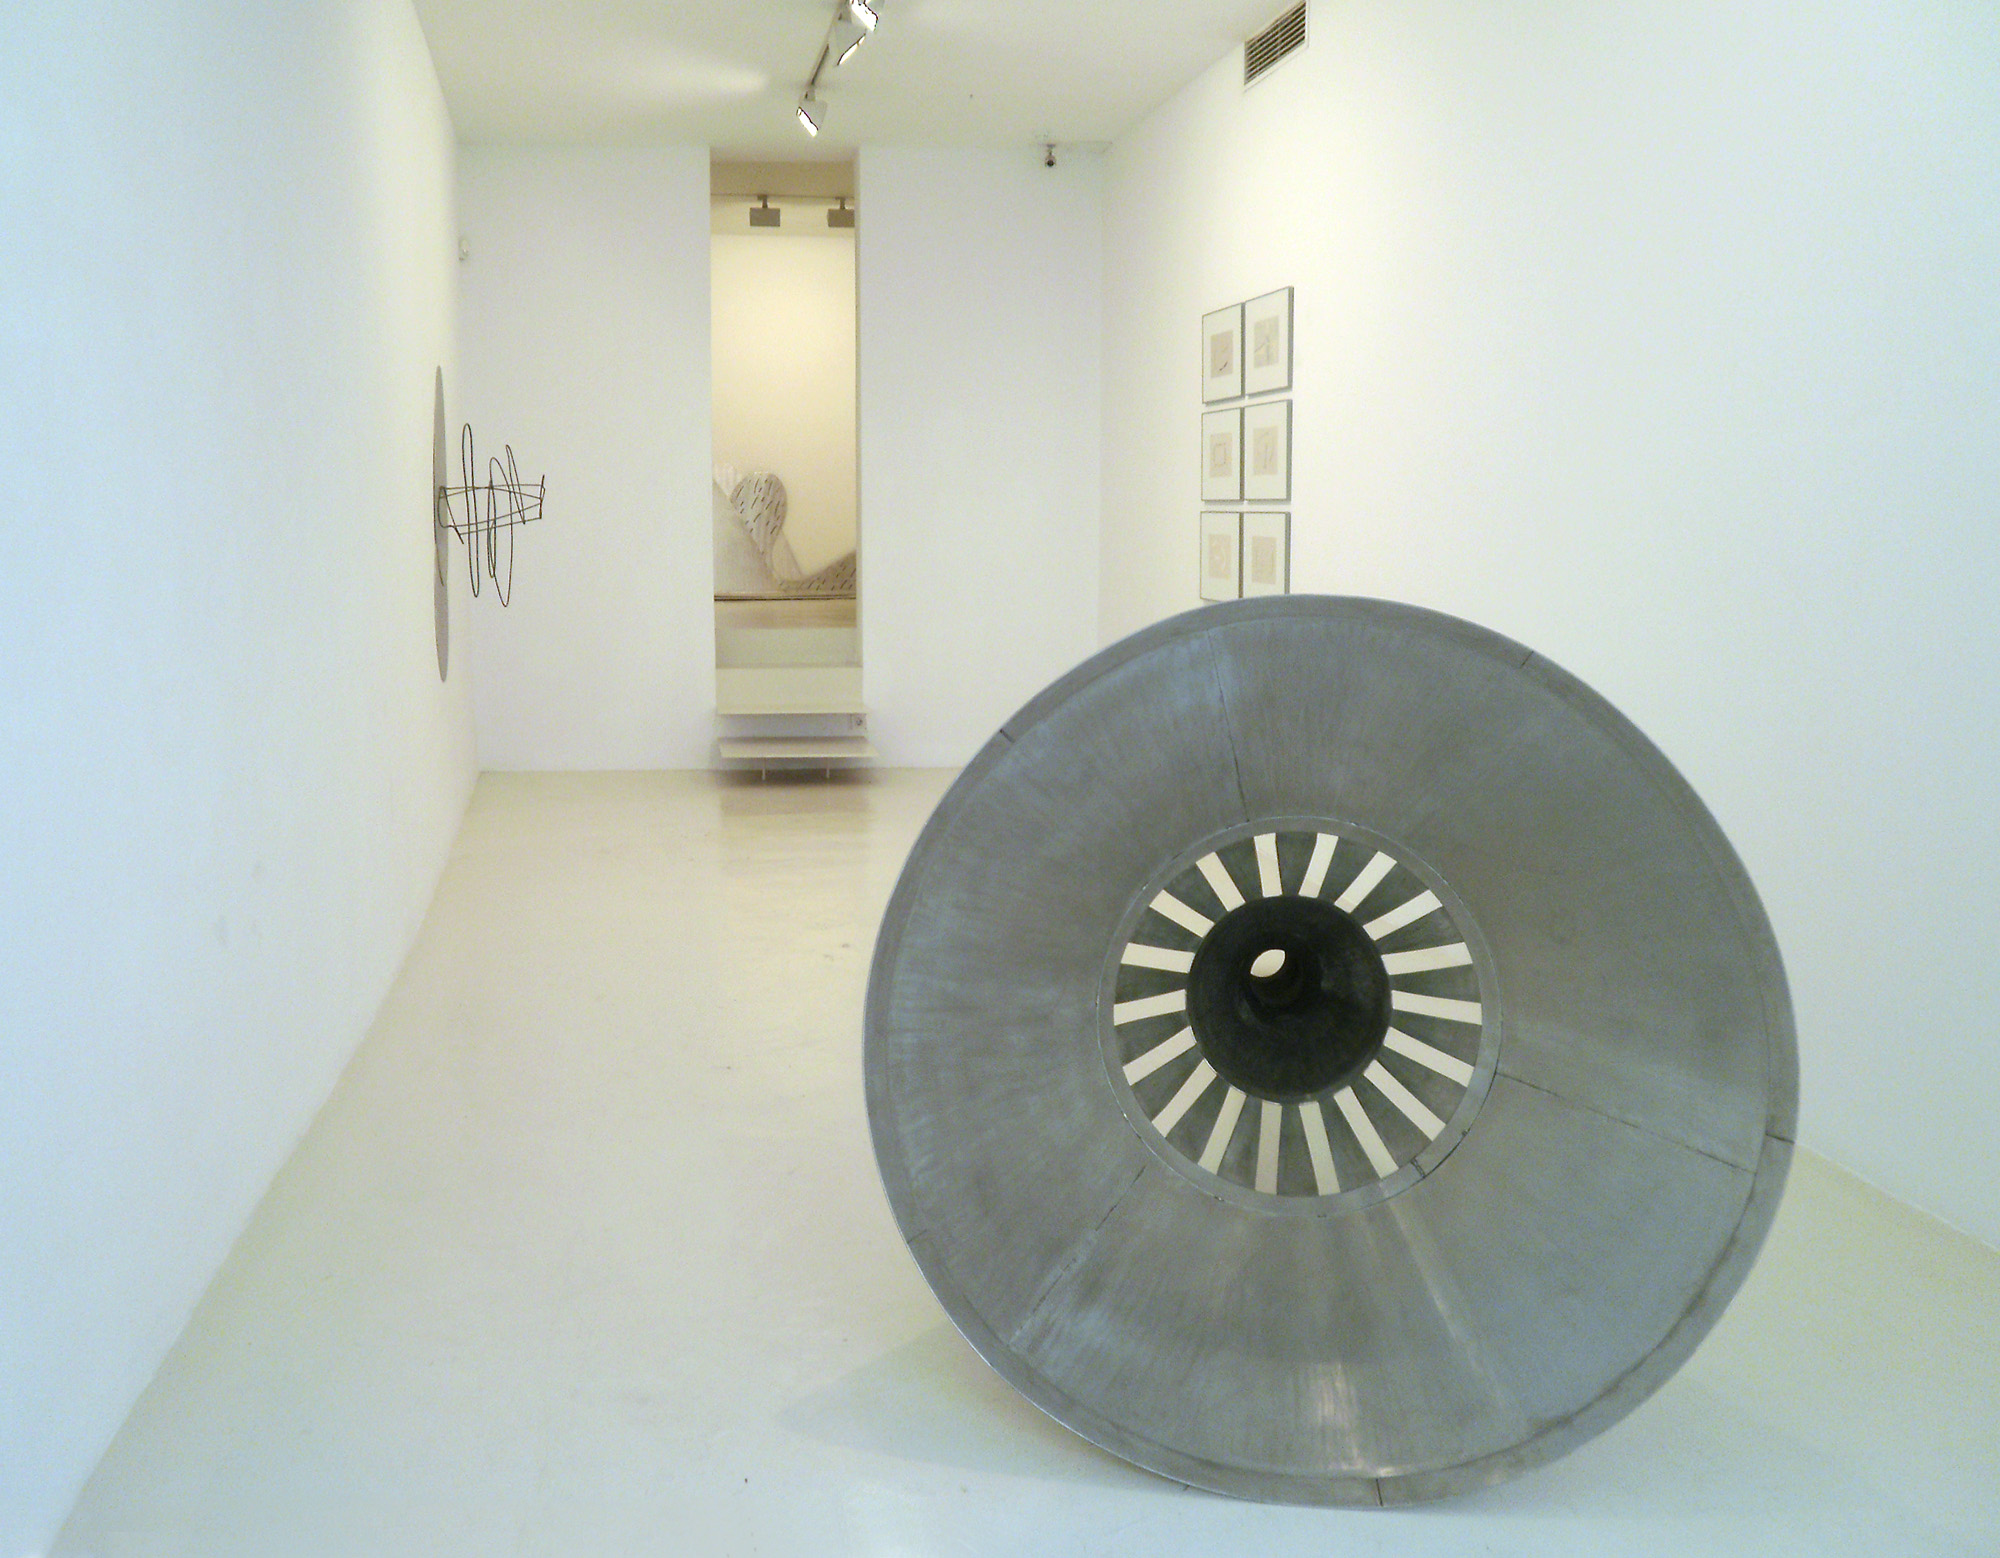 Exhibition view from Susana Solano, 2010